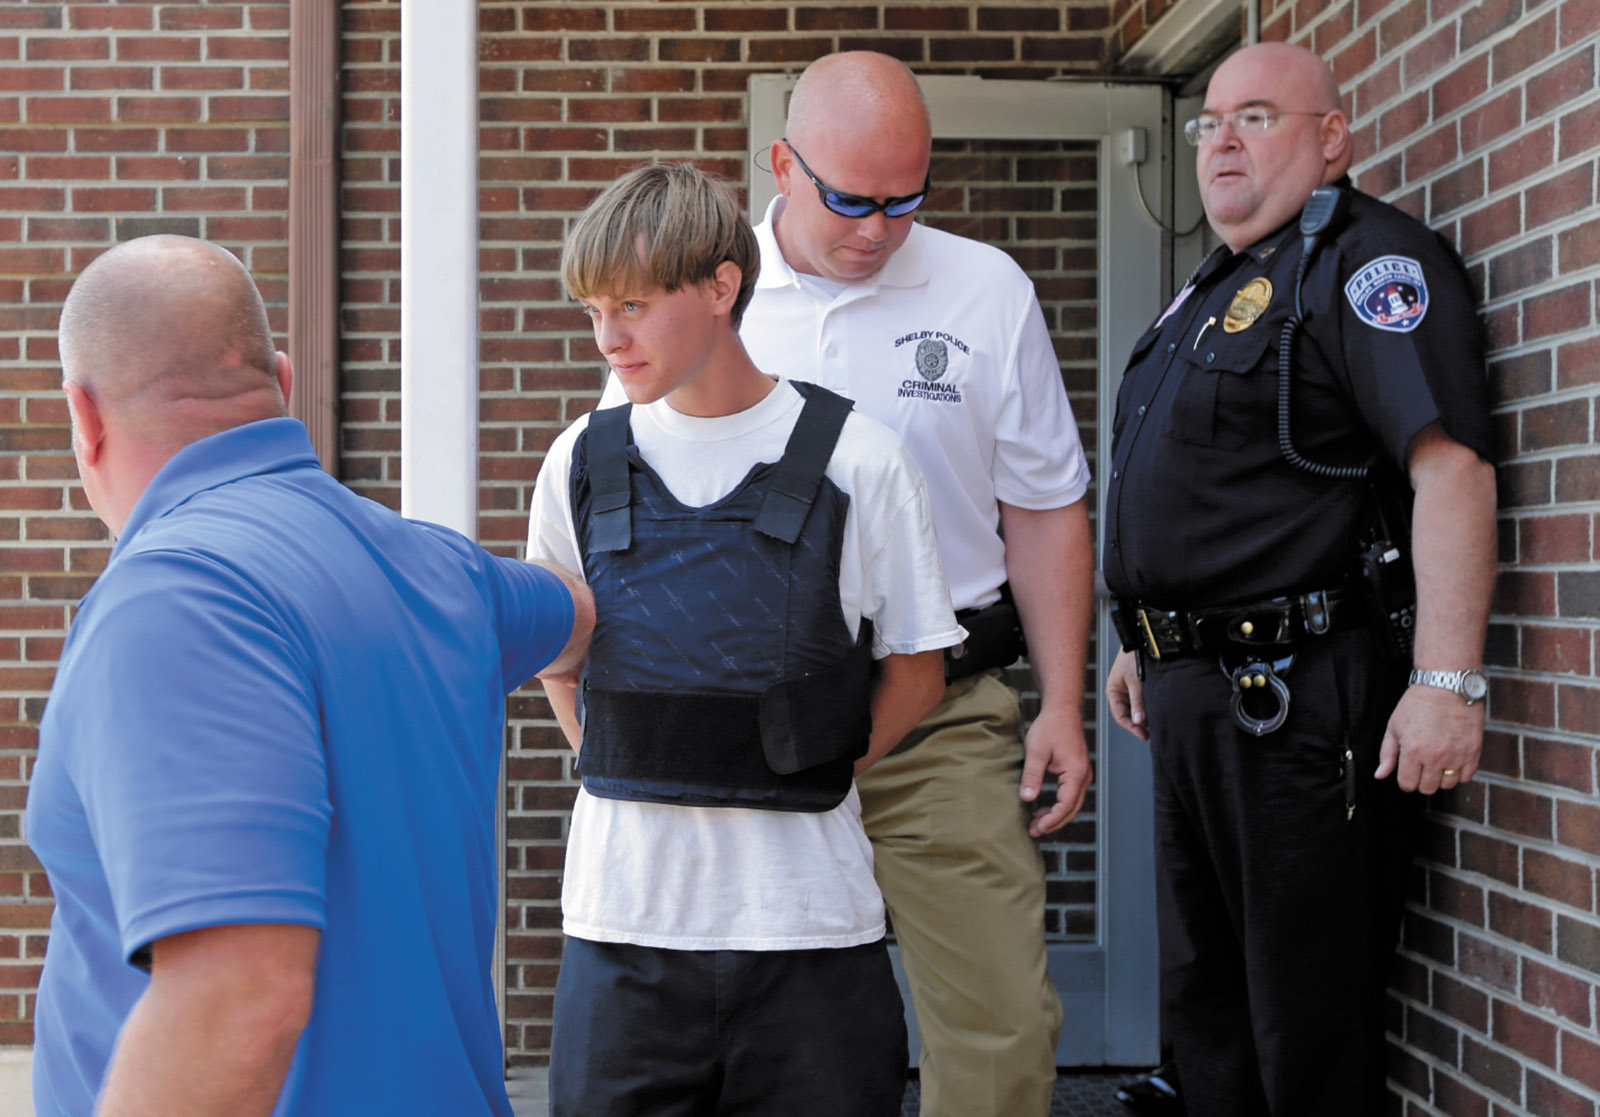 Dylann Roof being escorted from the Shelby Police Department after his arrest, Shelby, North Carolina, June 2015